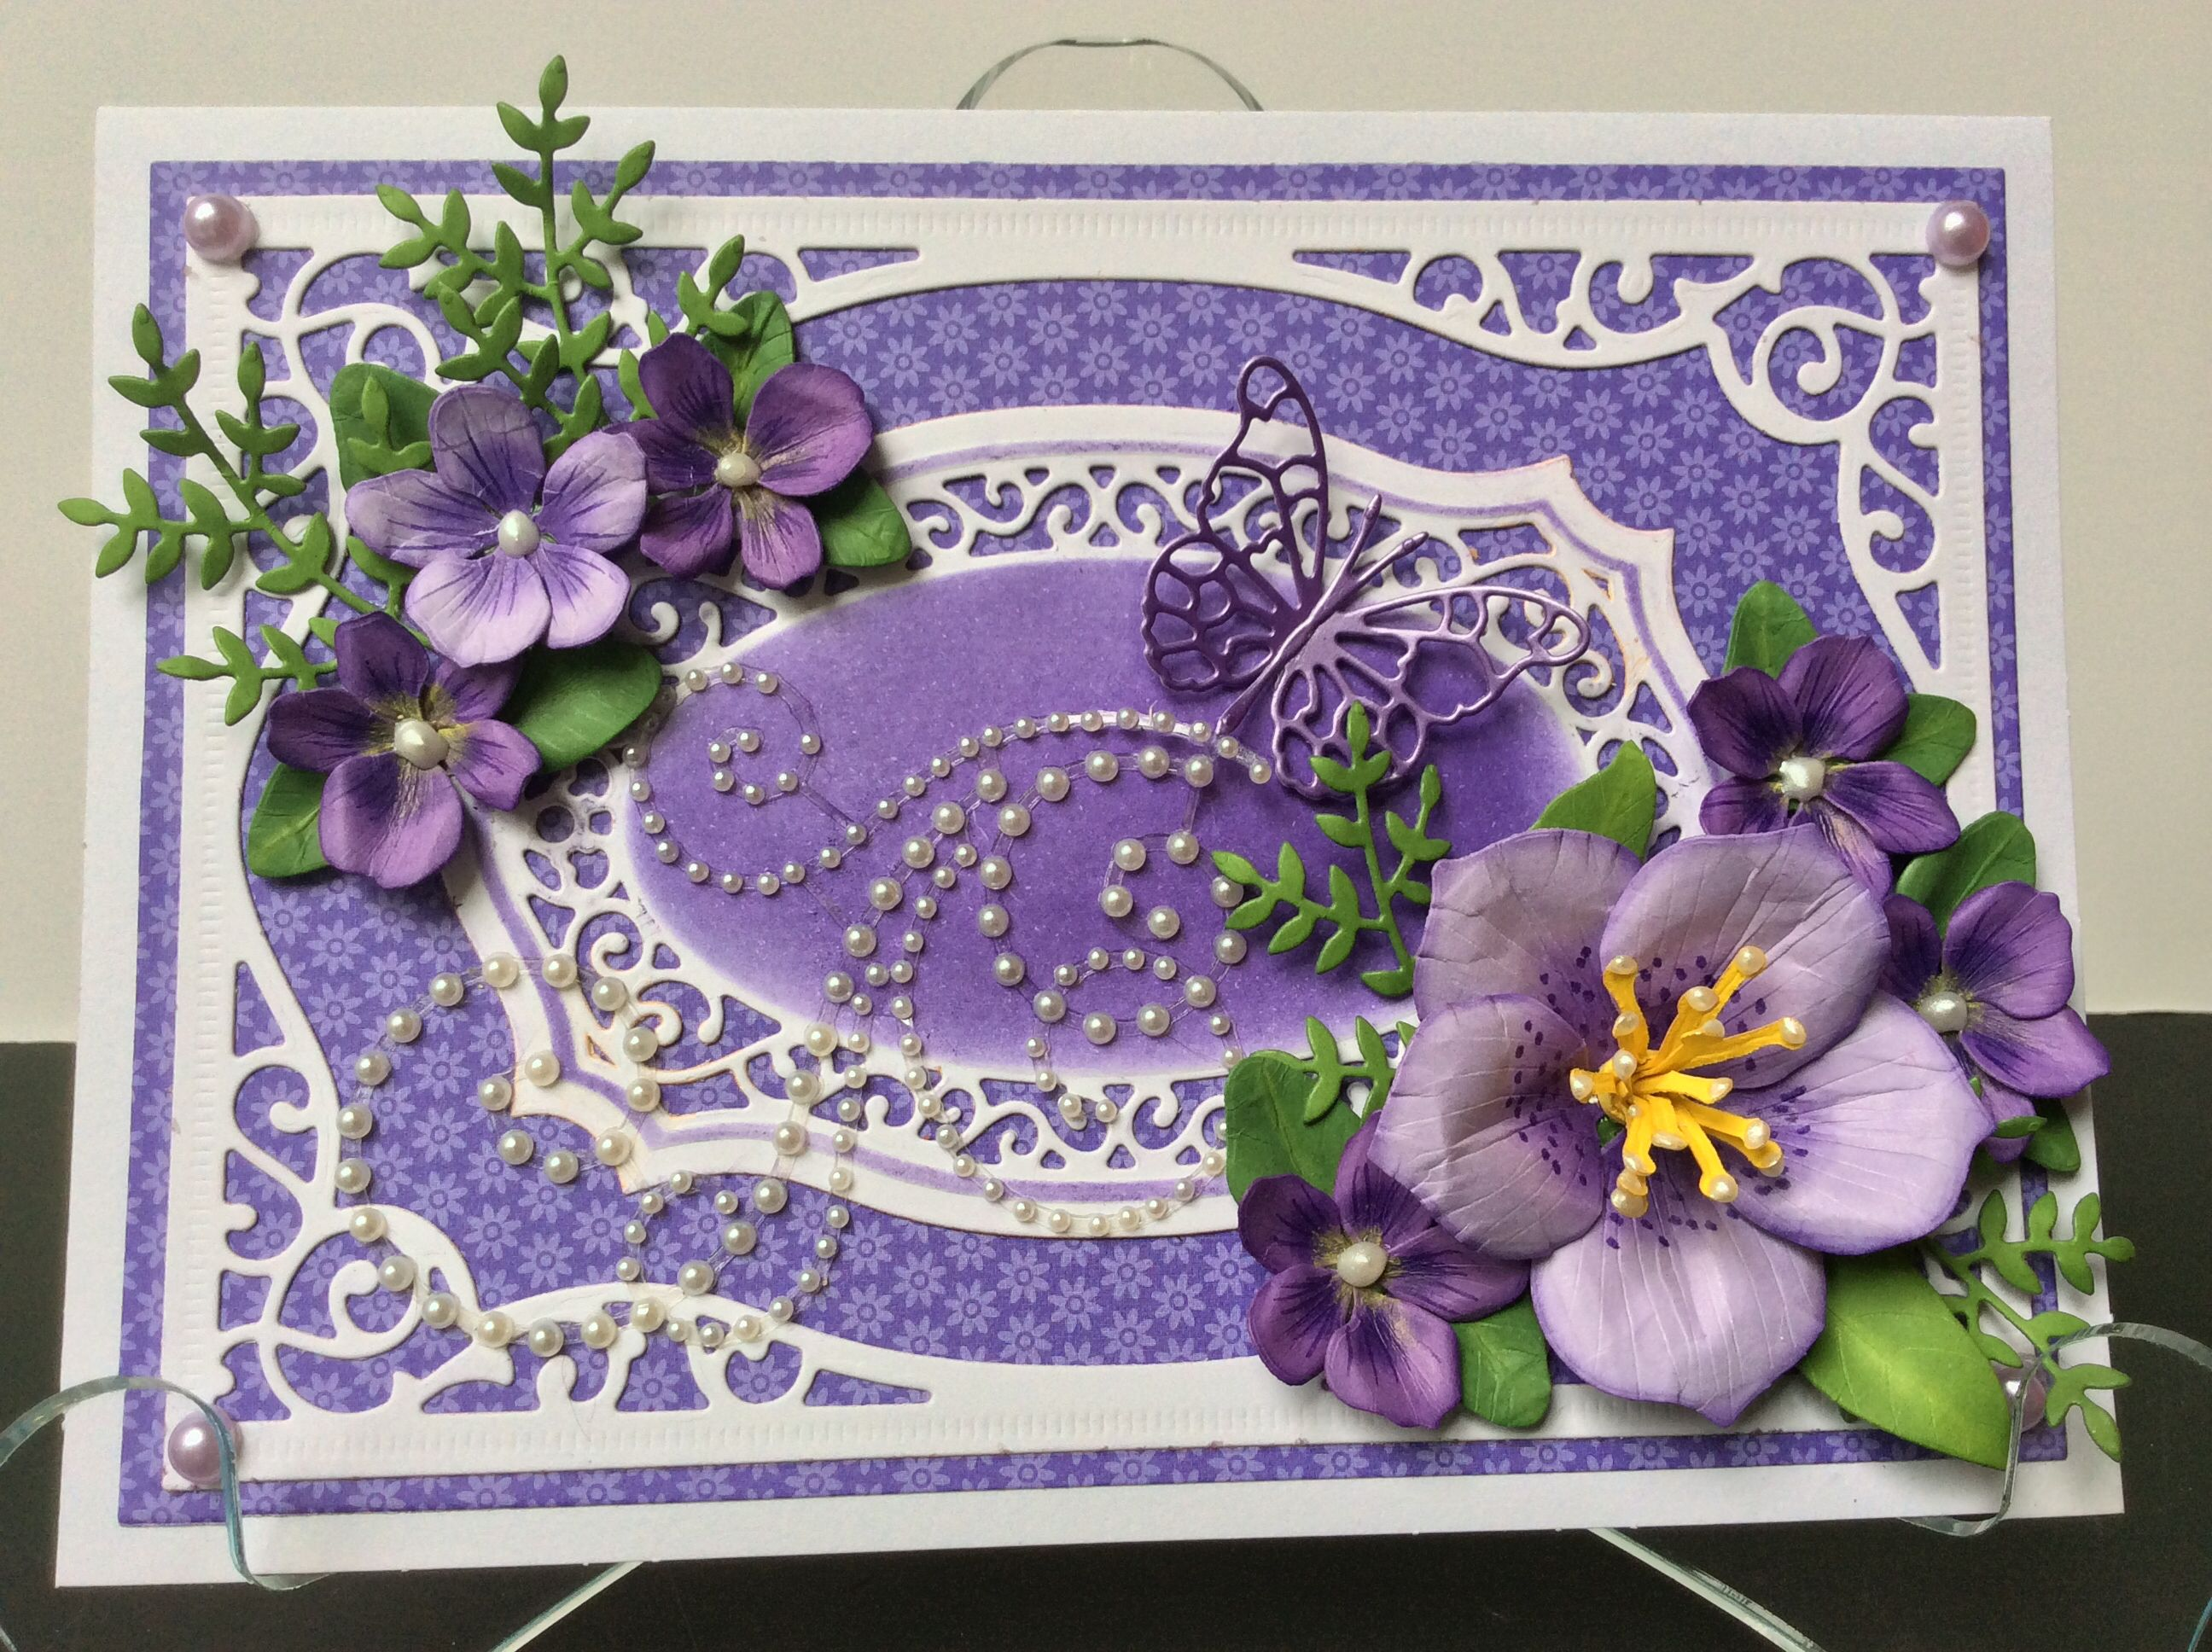 Made with spellbinders majestic labels 25 and susans garden flower made with spellbinders majestic labels 25 and susans garden flower dies from sizzix my own home made cards pinterest cards spellbinders cards and m4hsunfo